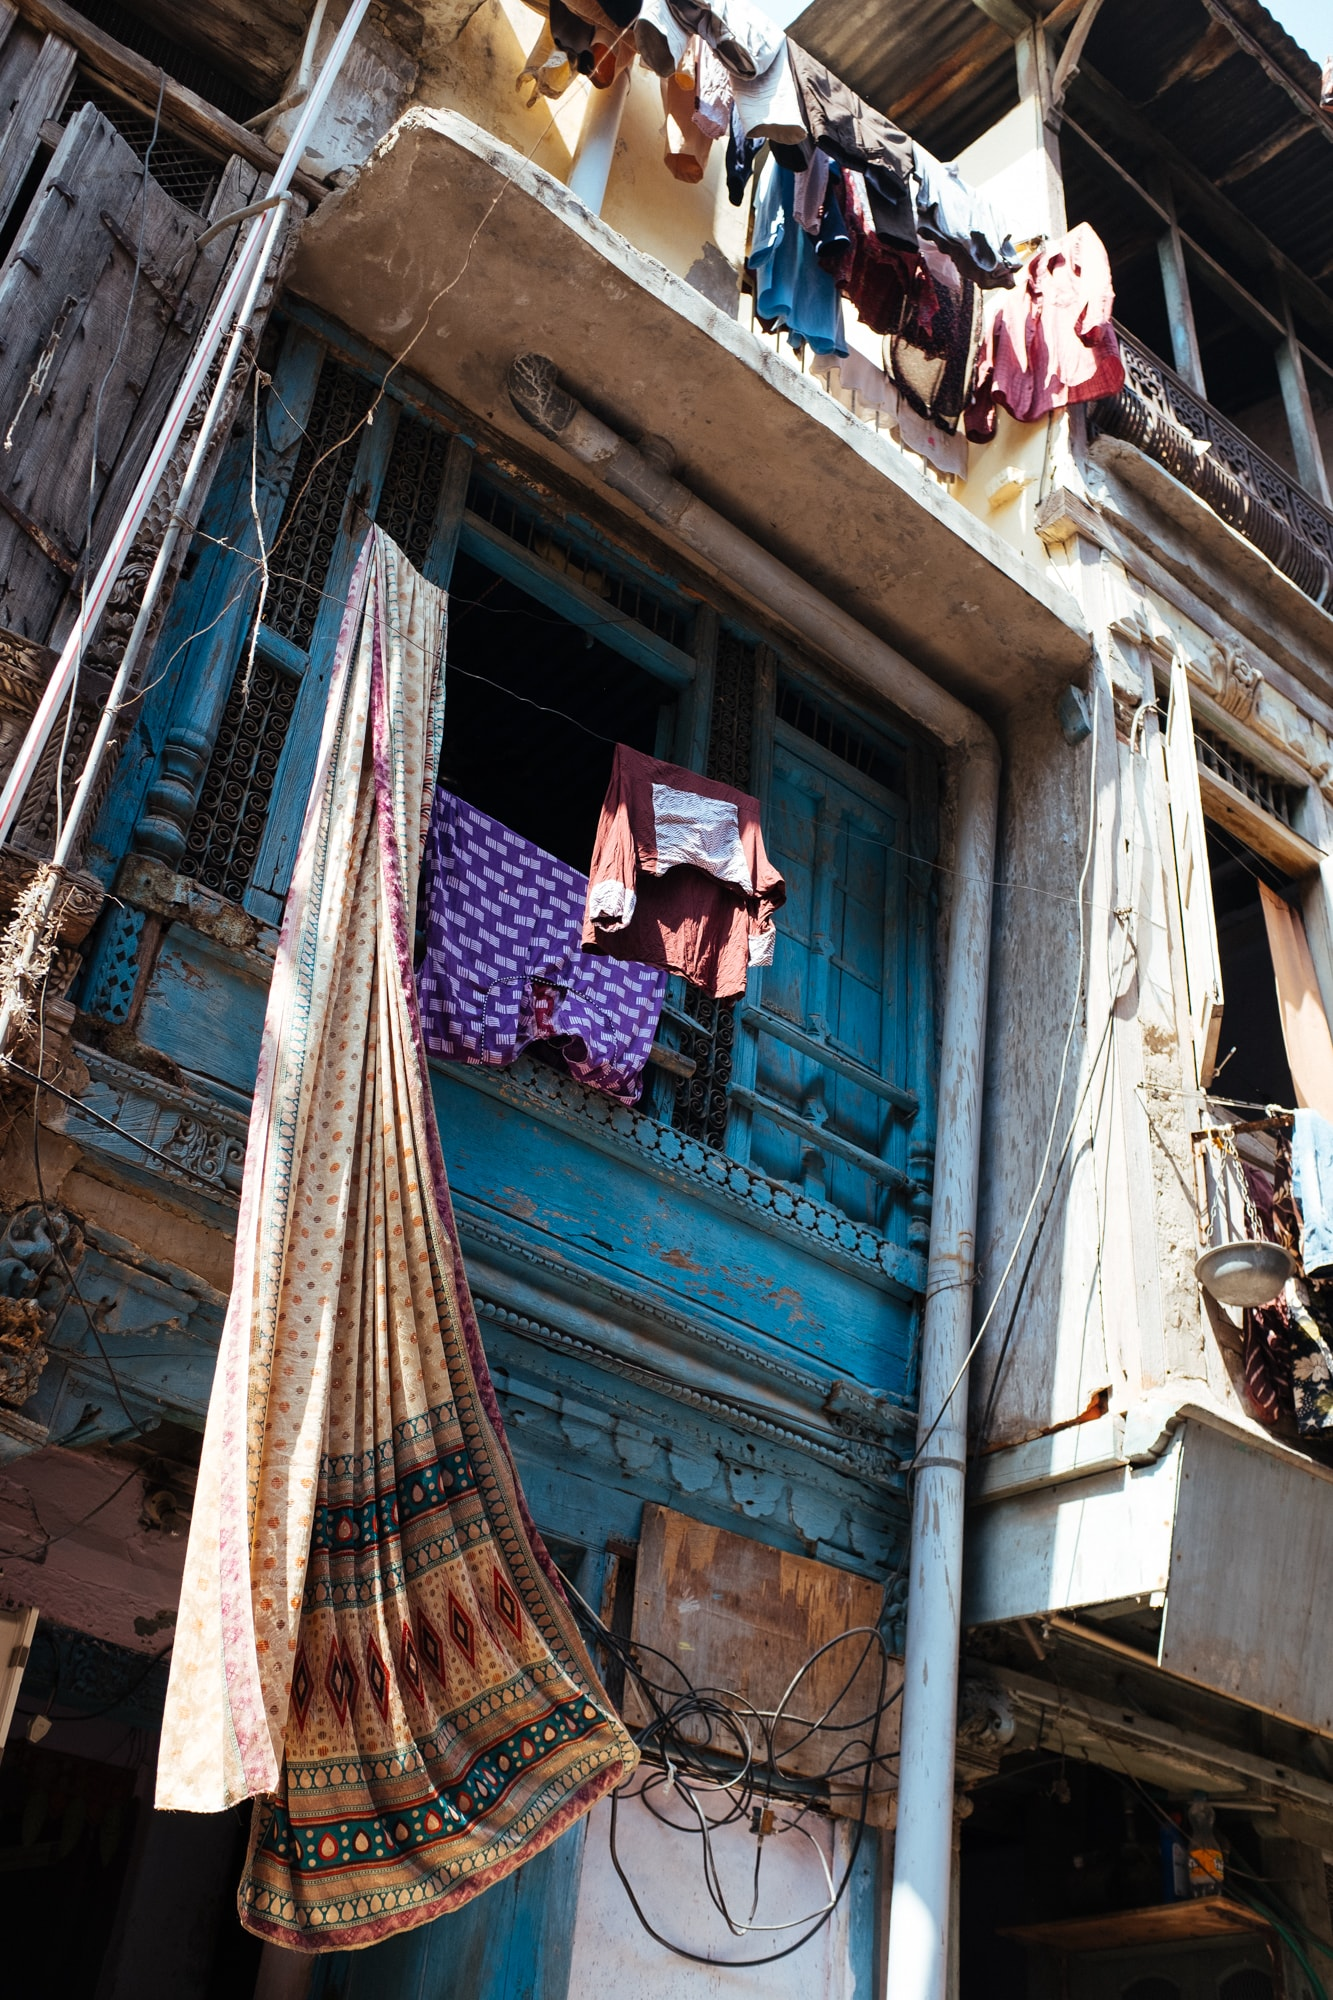 A sari along with other clothes drying outside balcony of a house in Upli Sheri, Ahmedabad